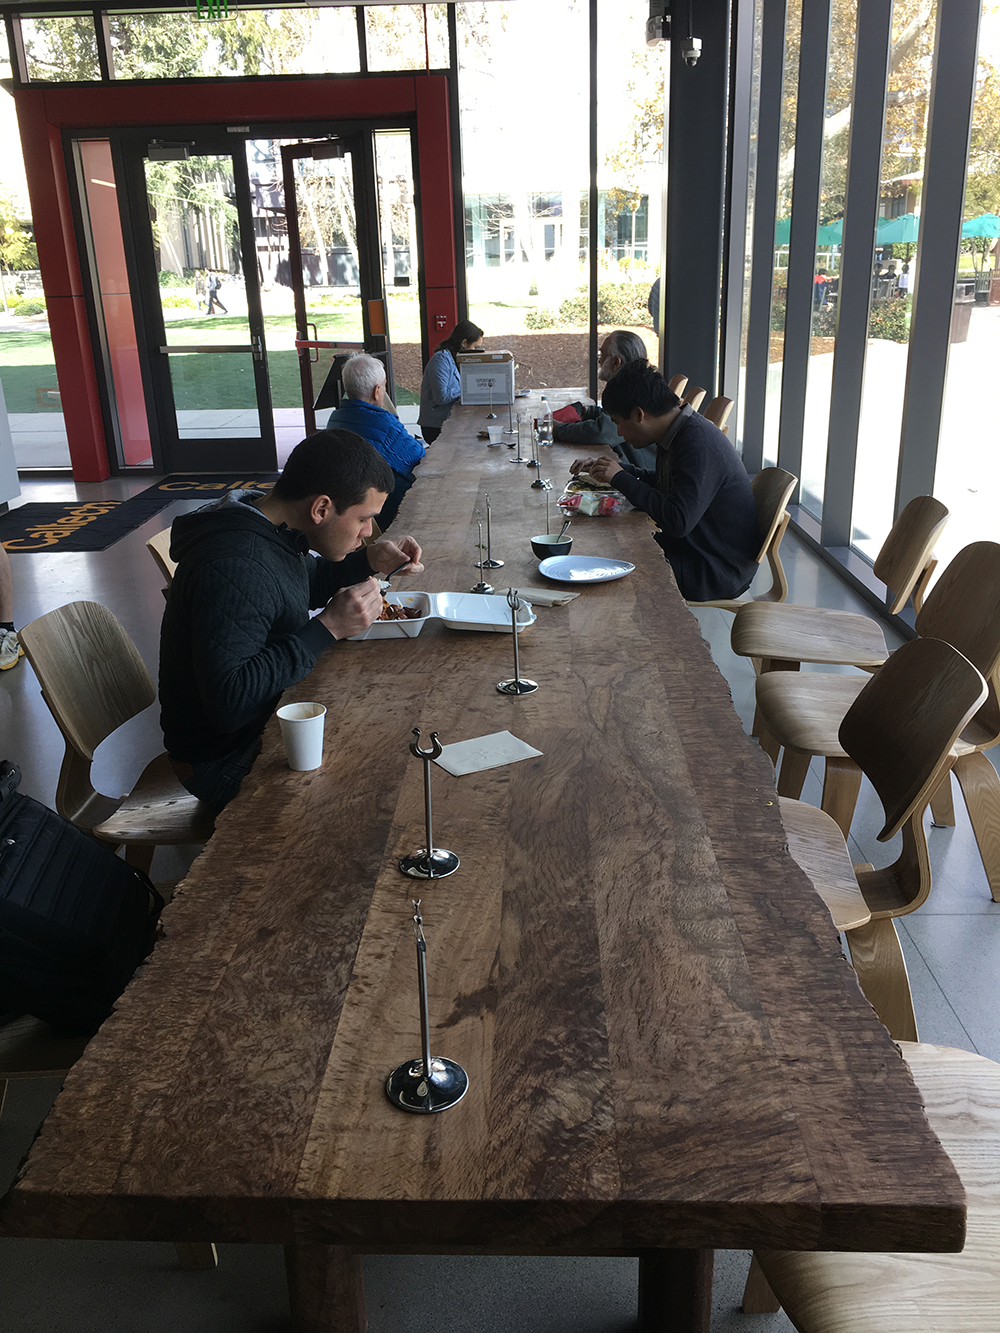 Diners eat lunch at the long table made from the wood of Caltech's famed Engelmann oak.